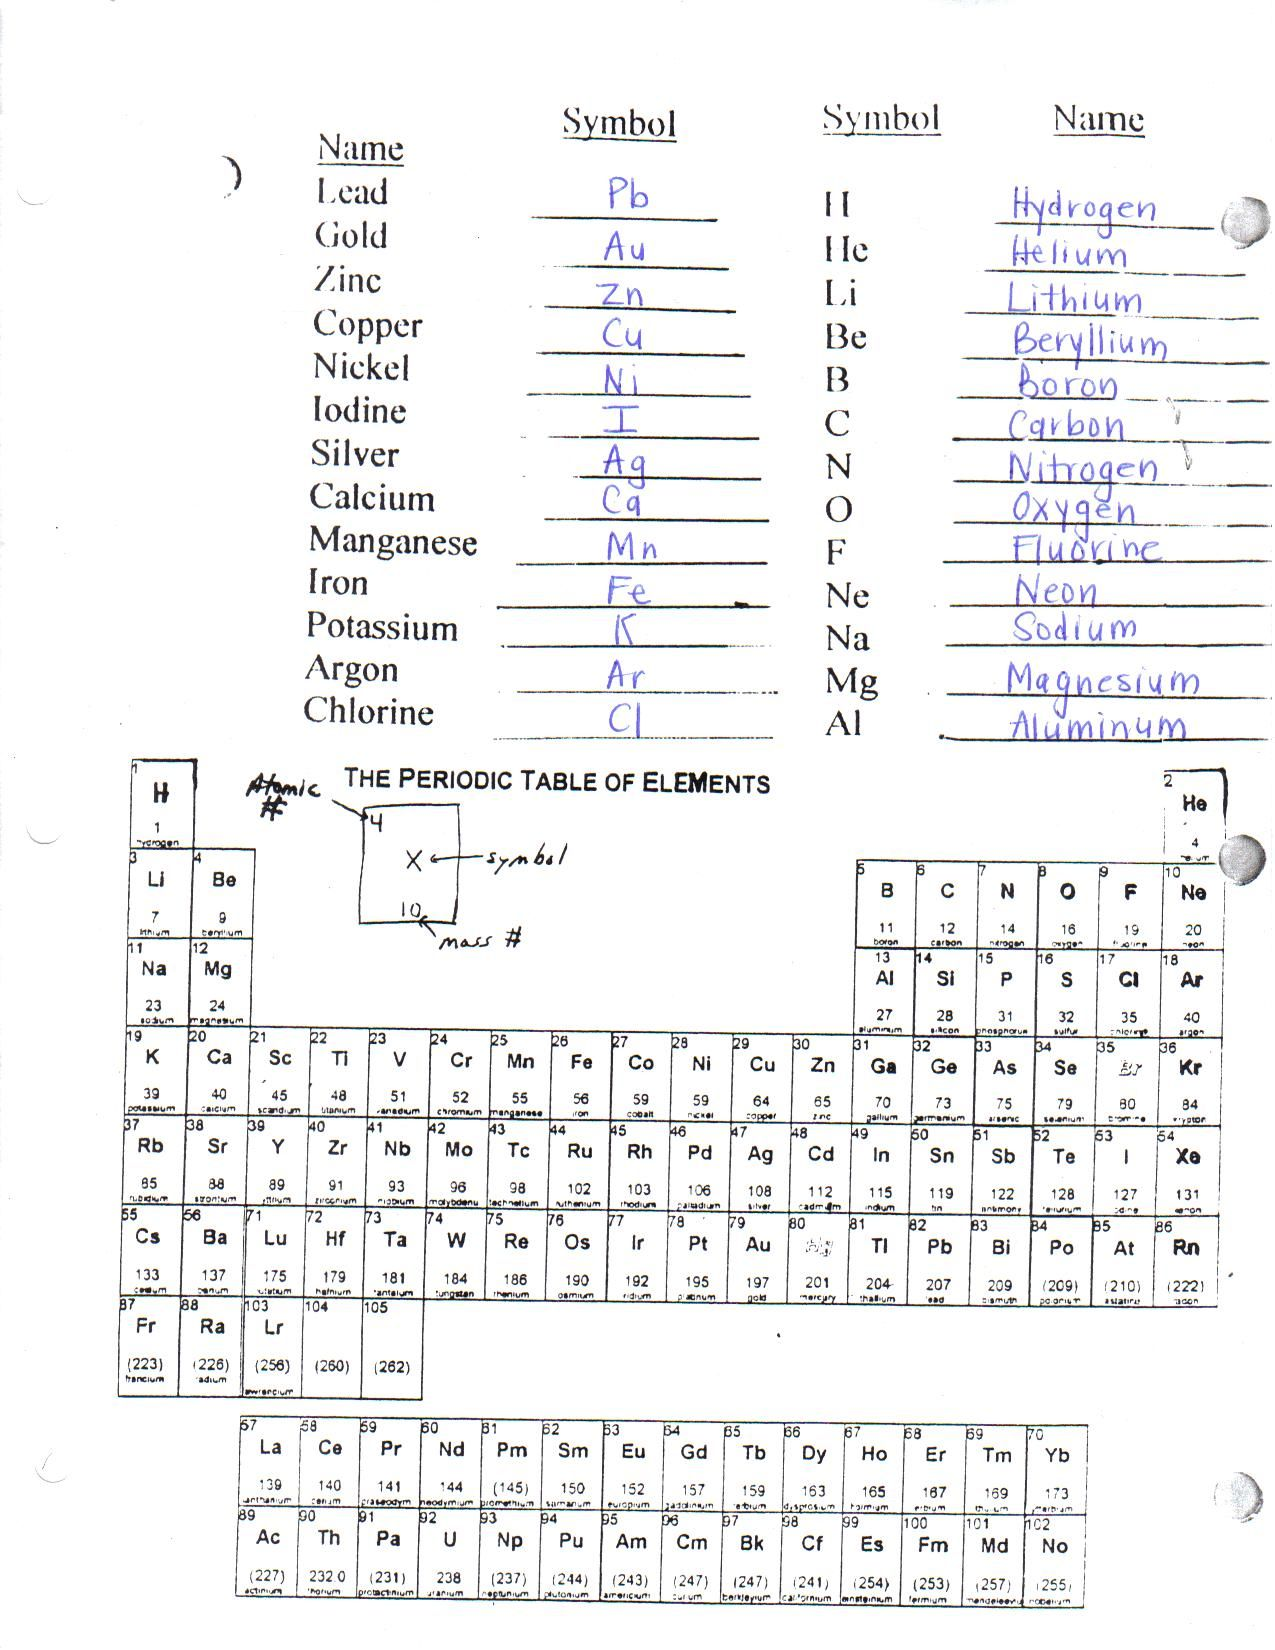 Counting Atoms Worksheet Google Search Periodic Table Song